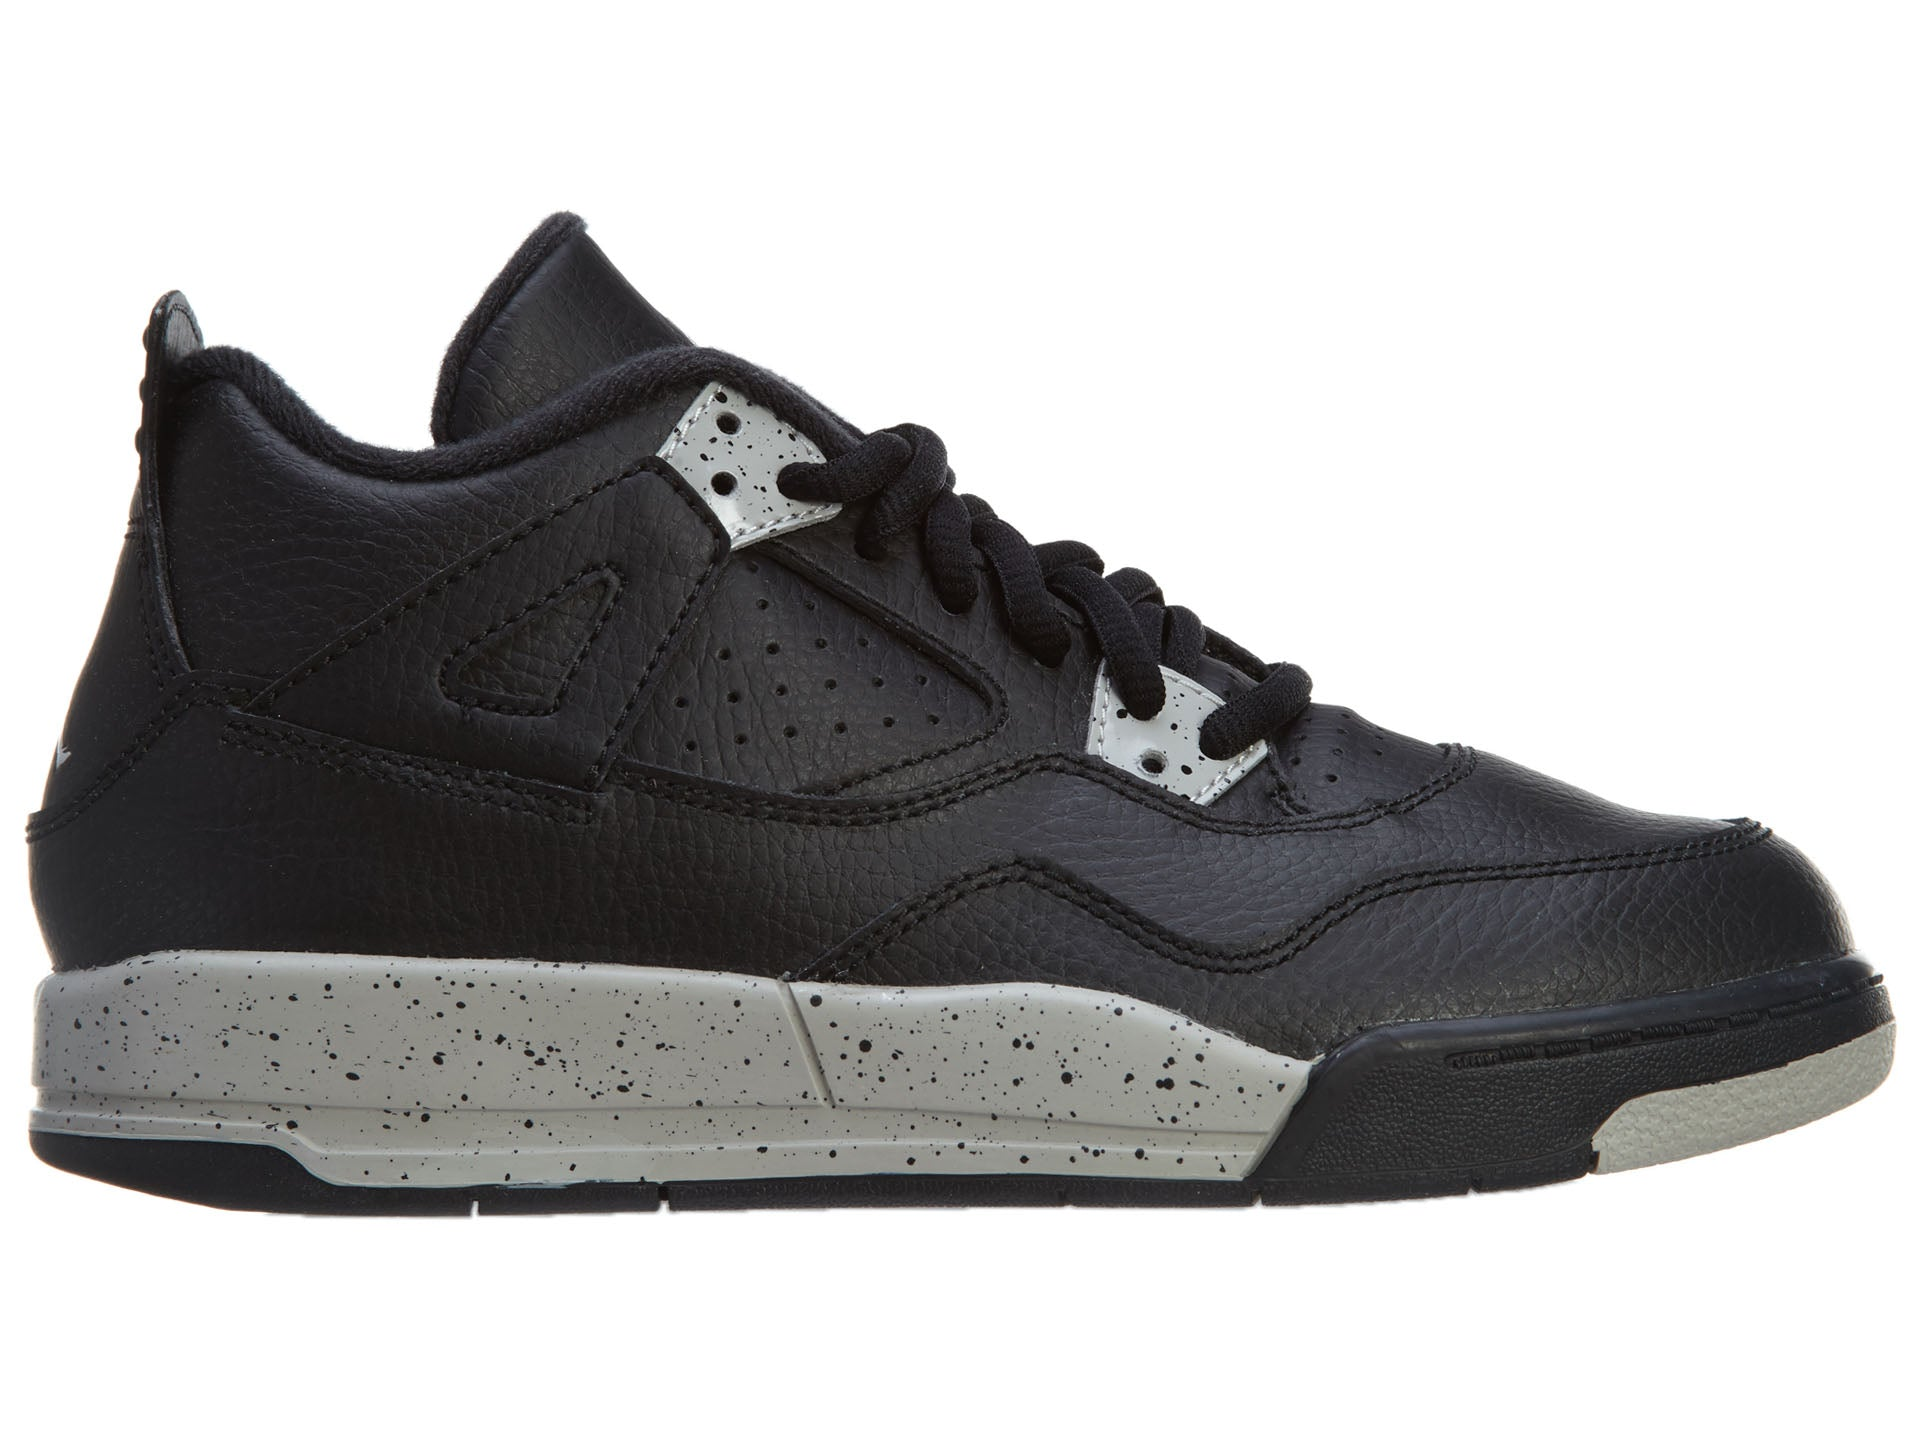 Jordan 4 Retro Ls Bp Little Kids Style : 707430